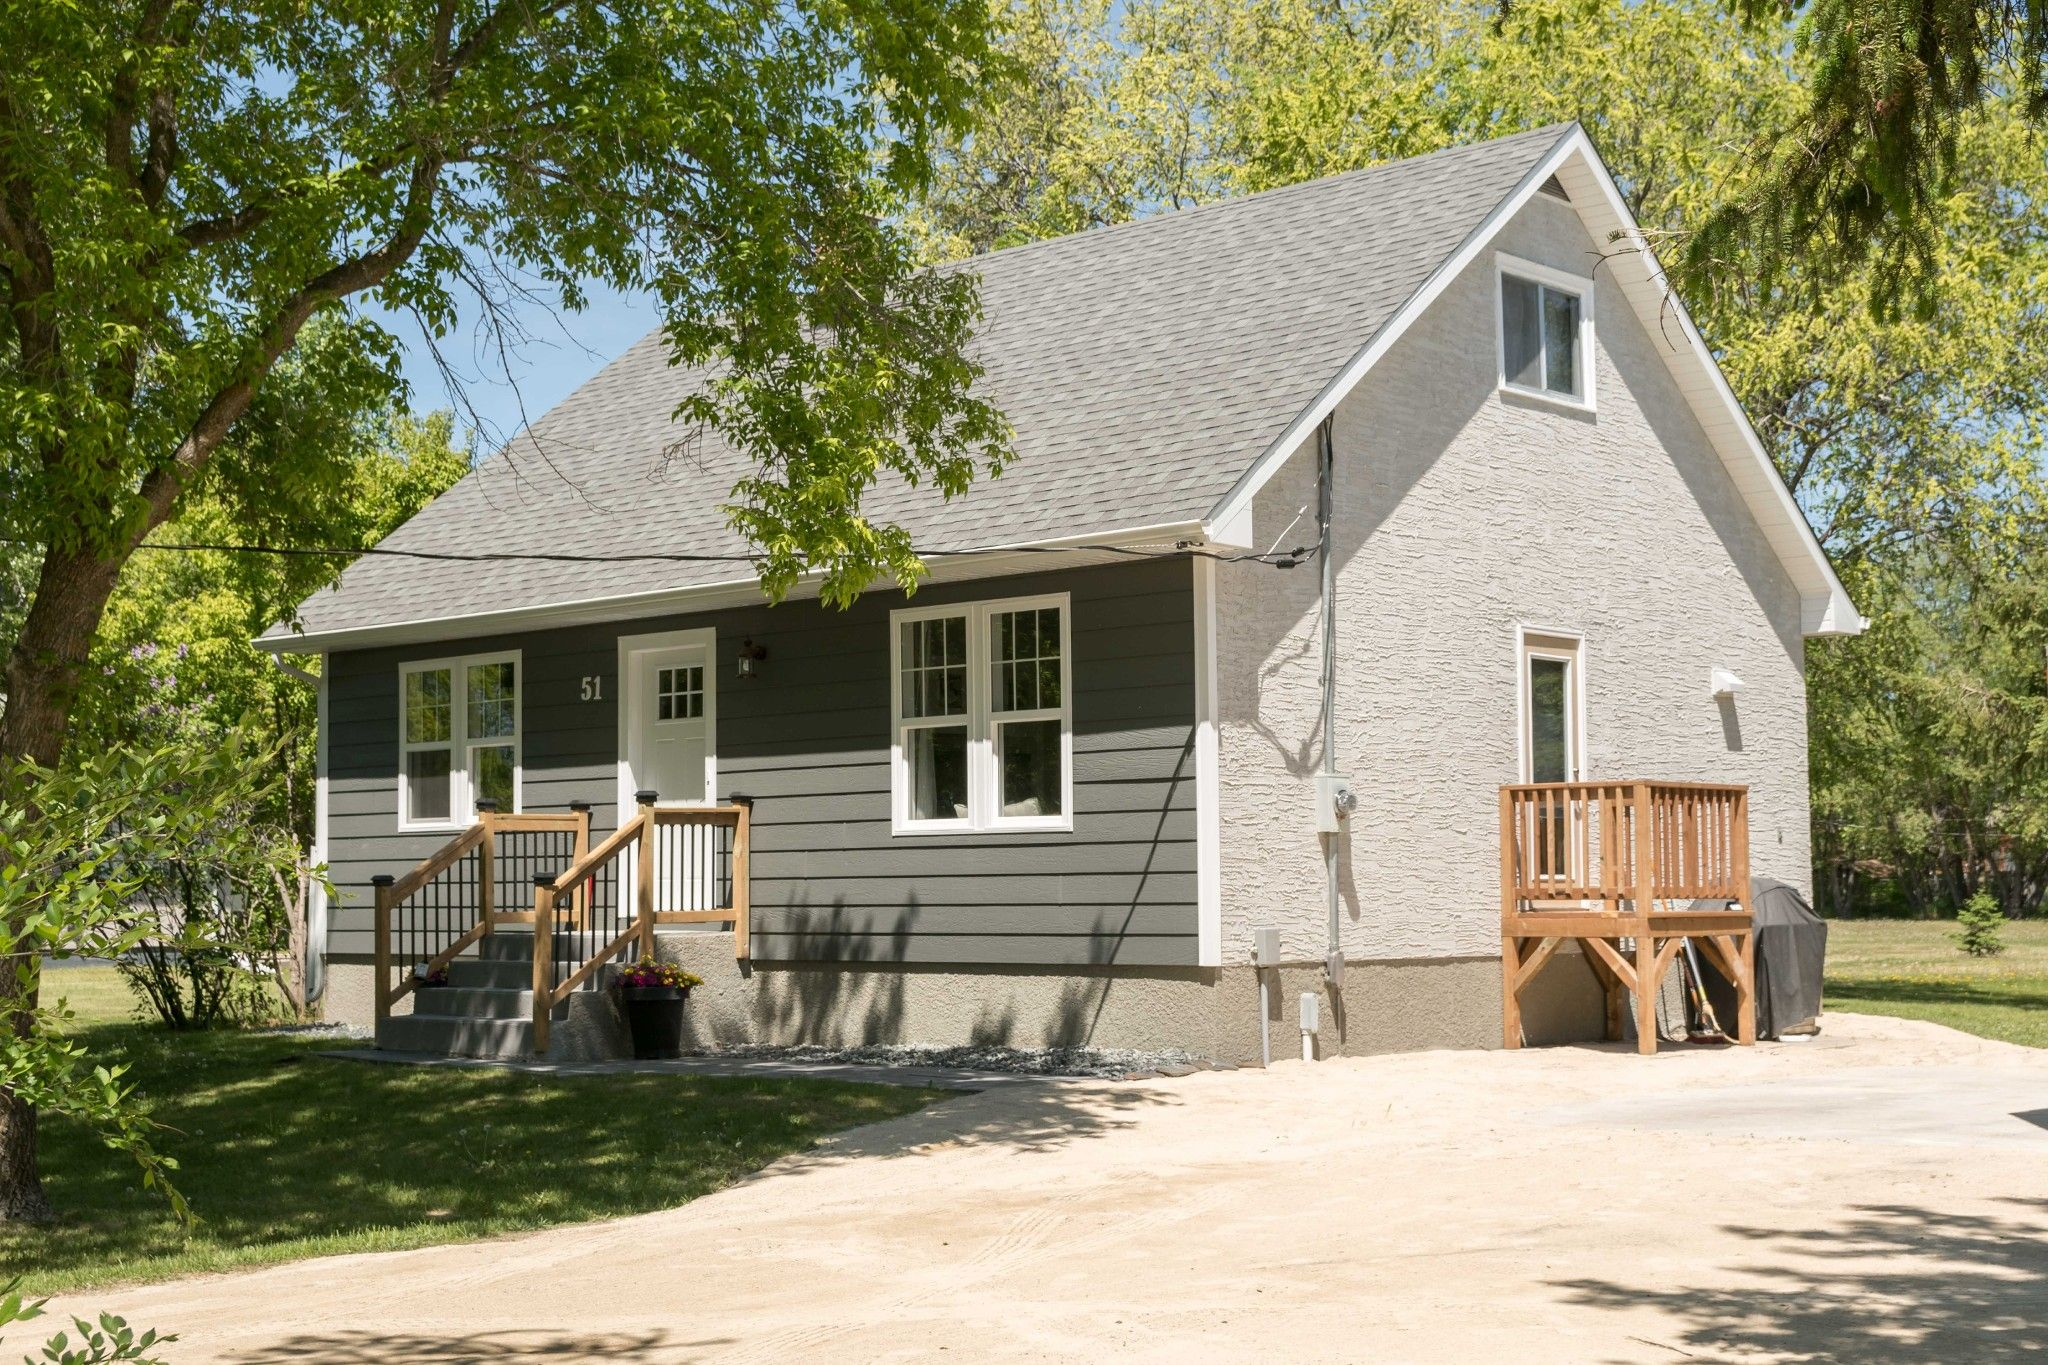 Main Photo: 51 McLennan Road: St. Andrews Single Family Detached for sale (R13)  : MLS®# 1915313